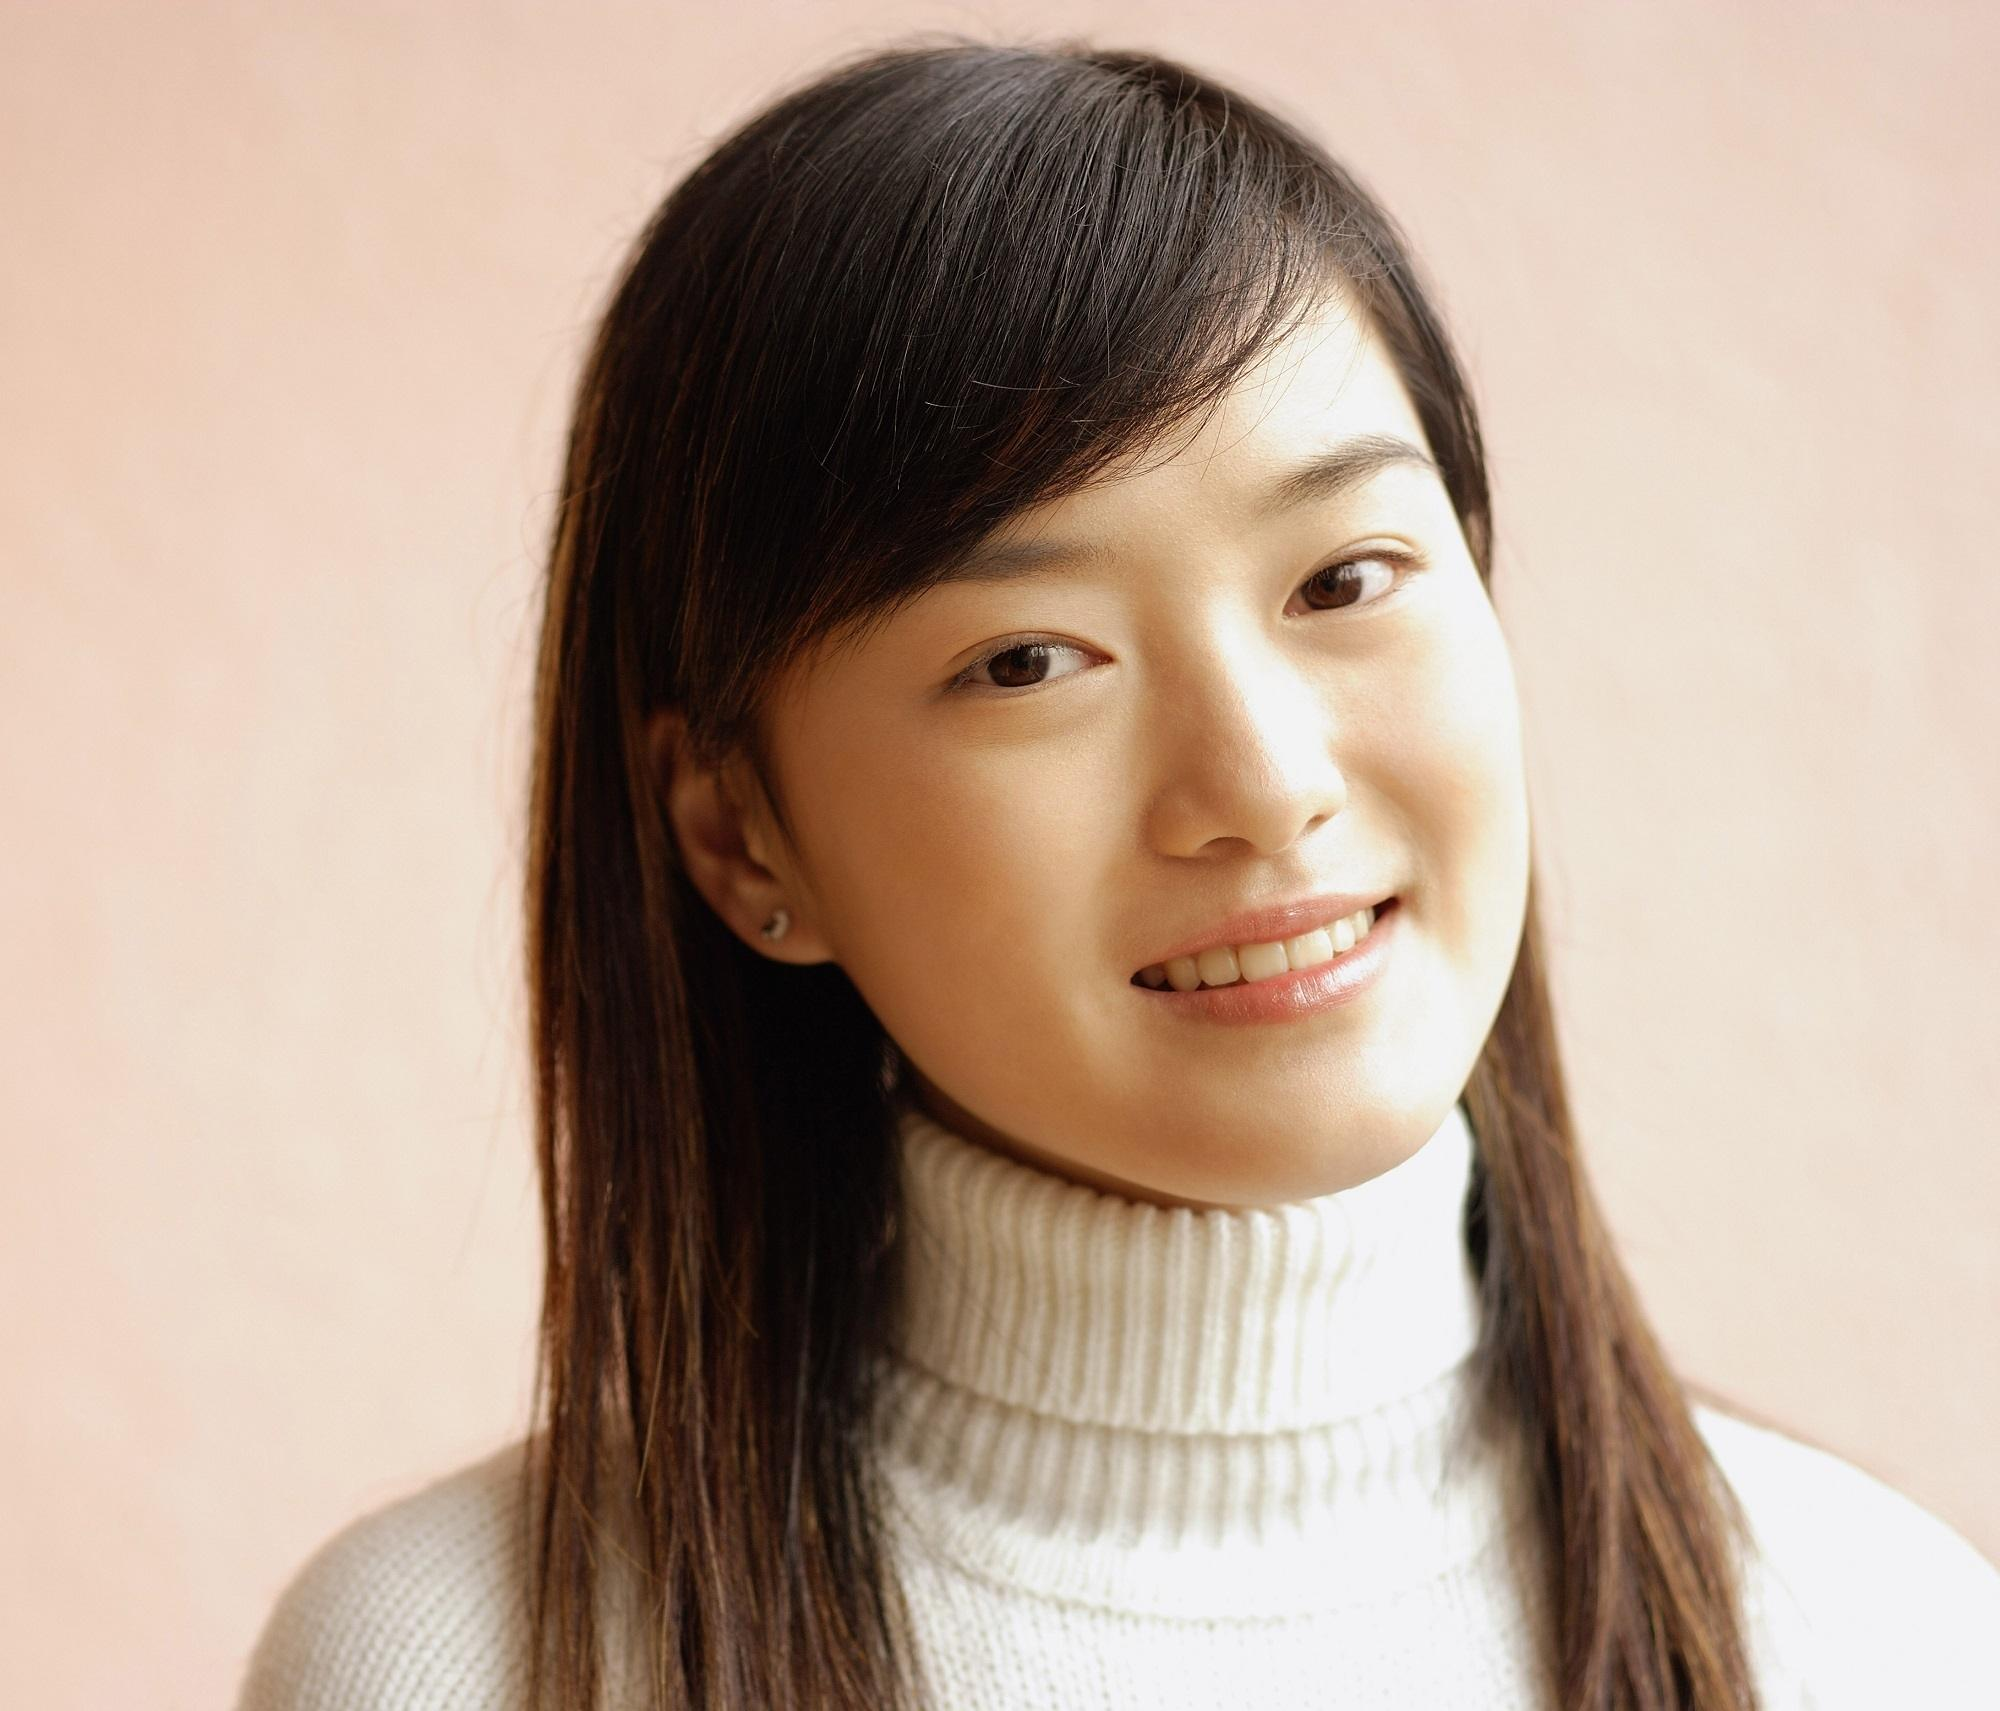 Long hair with side bangs: Closeup shot of an Asian woman with long dark brown hair wearing a white turleneck shirt against a pink background